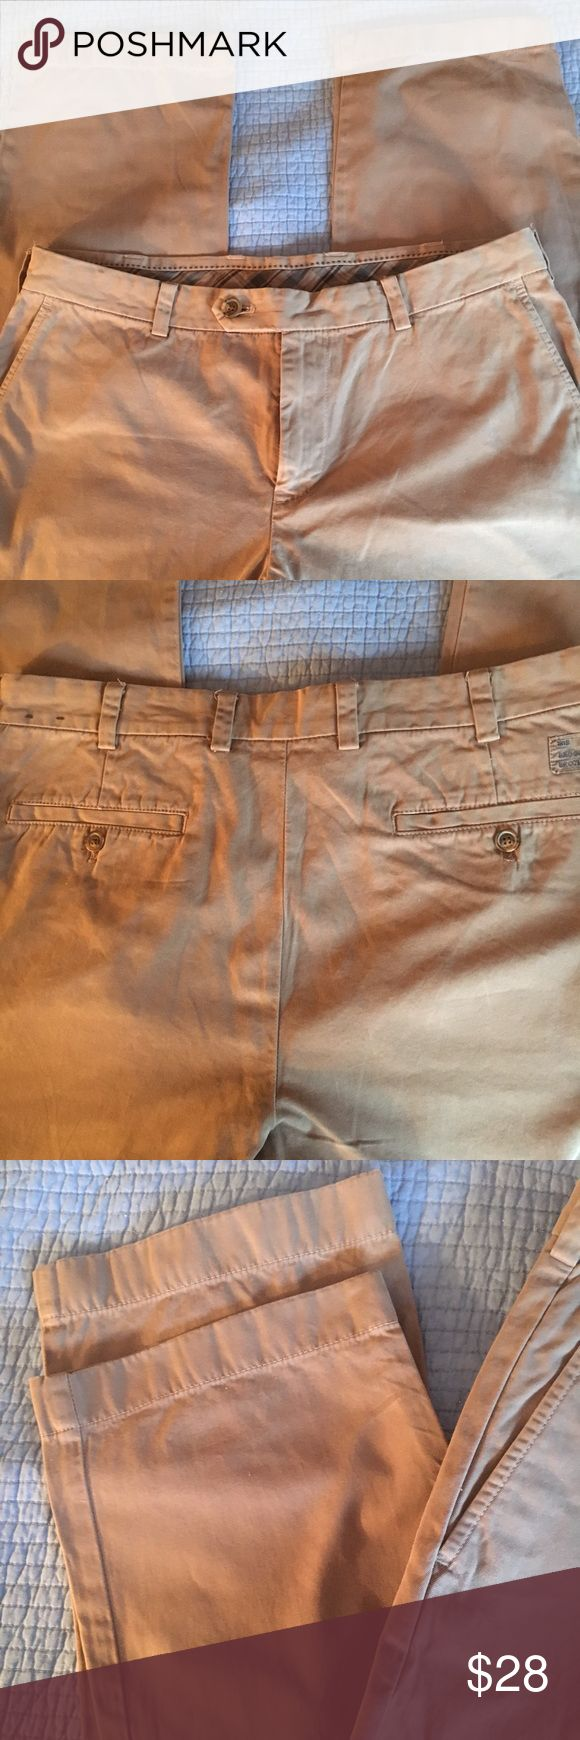 Men Khaki Pants by Brooks Brothers All cotton khaki in a weight perfect for warmer weather. Light gray color. Almost new condition. Brooks Brothers Pants Chinos & Khakis